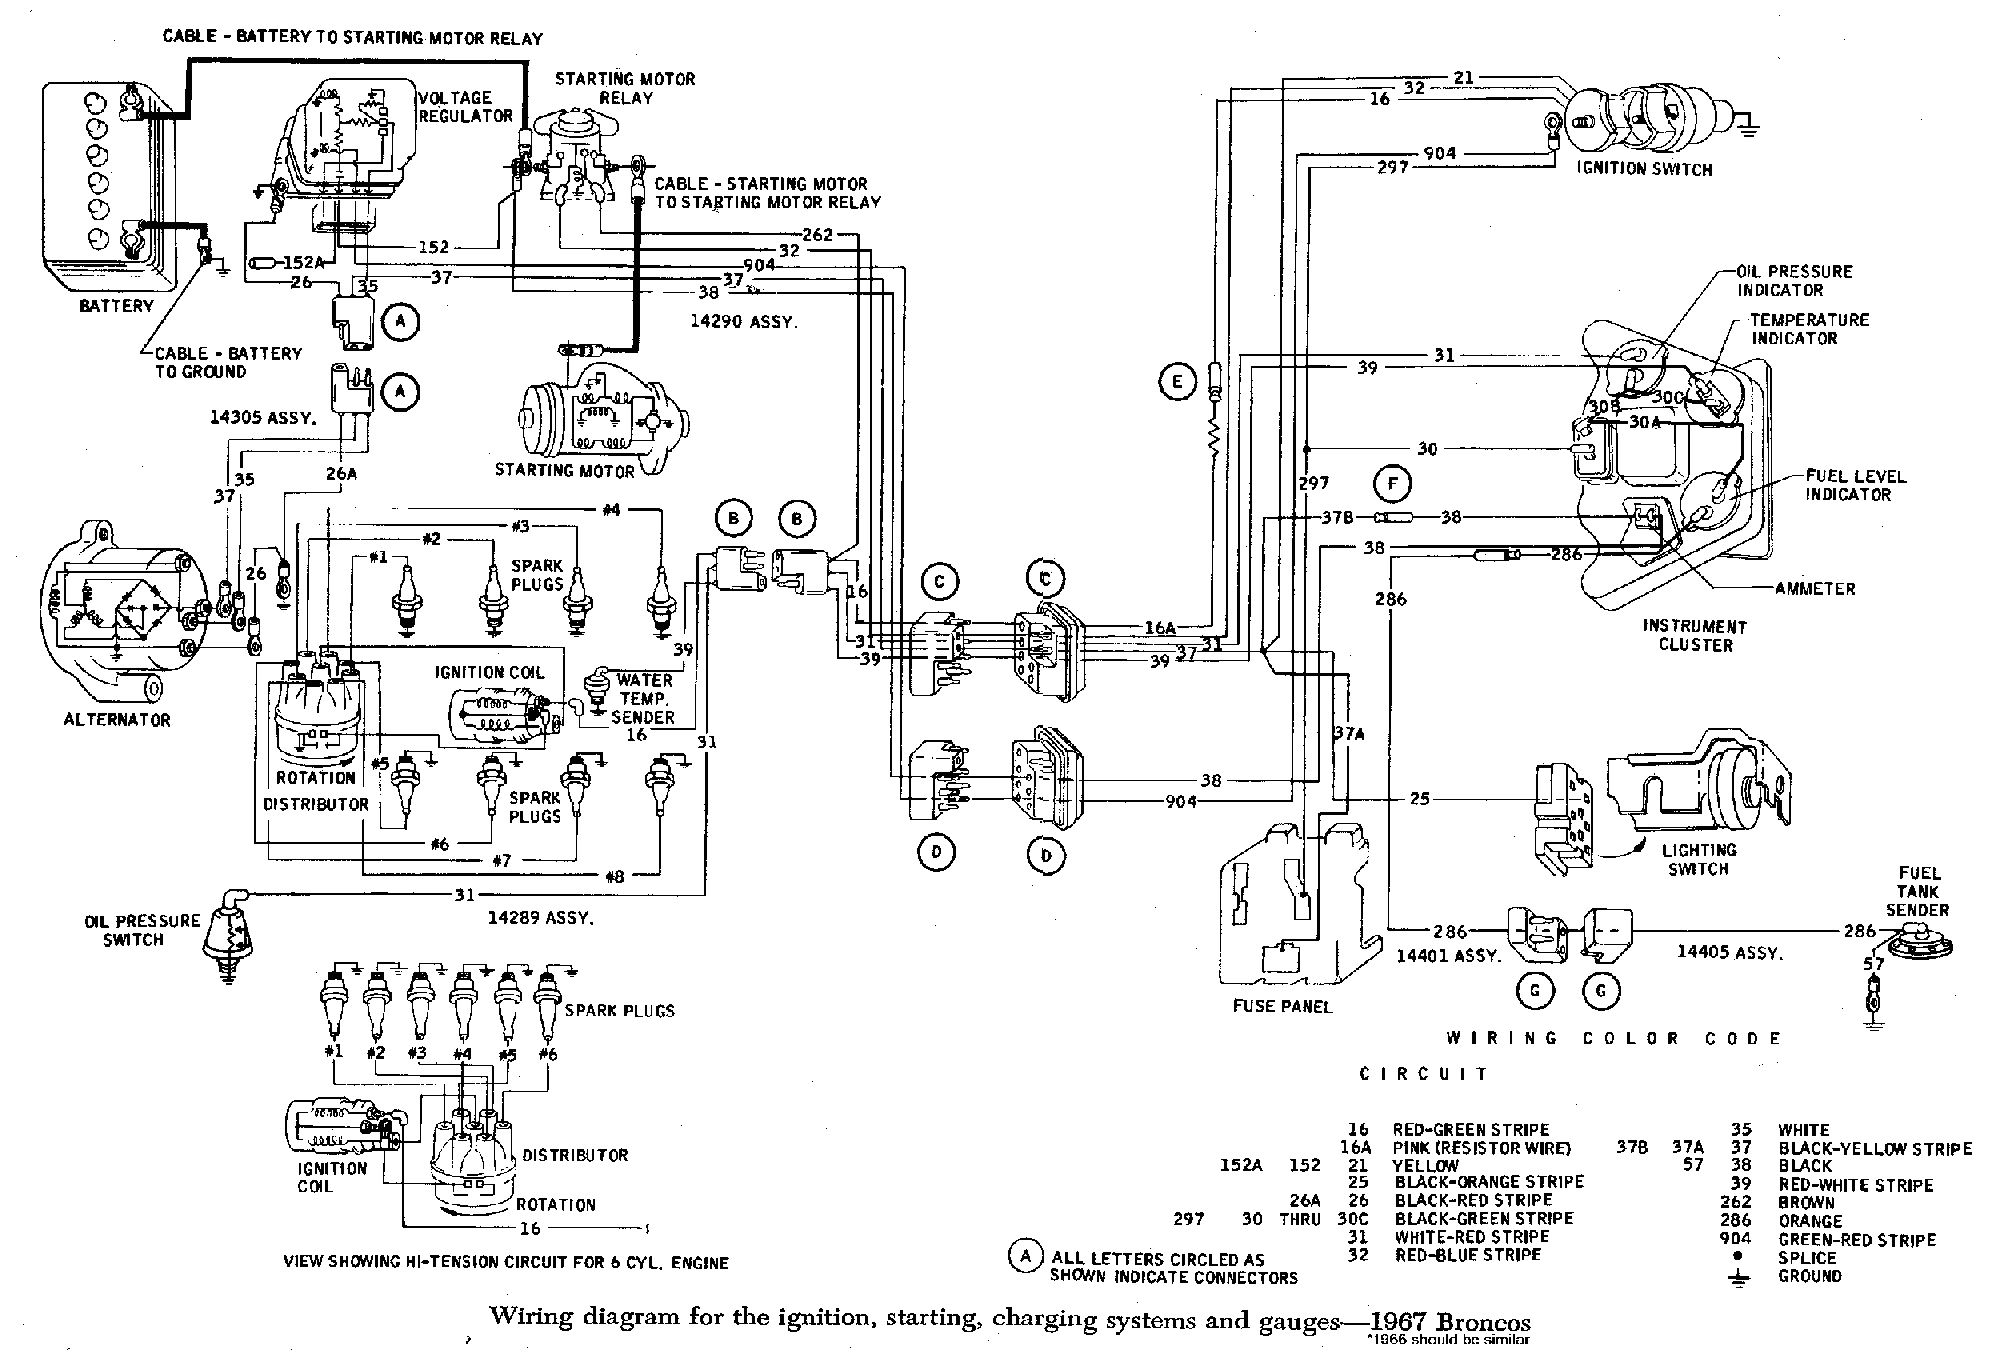 Ford Bronco Wiring Diagram Wiring Diagram for 1974 ford Bronco Wiring Diagram Insider